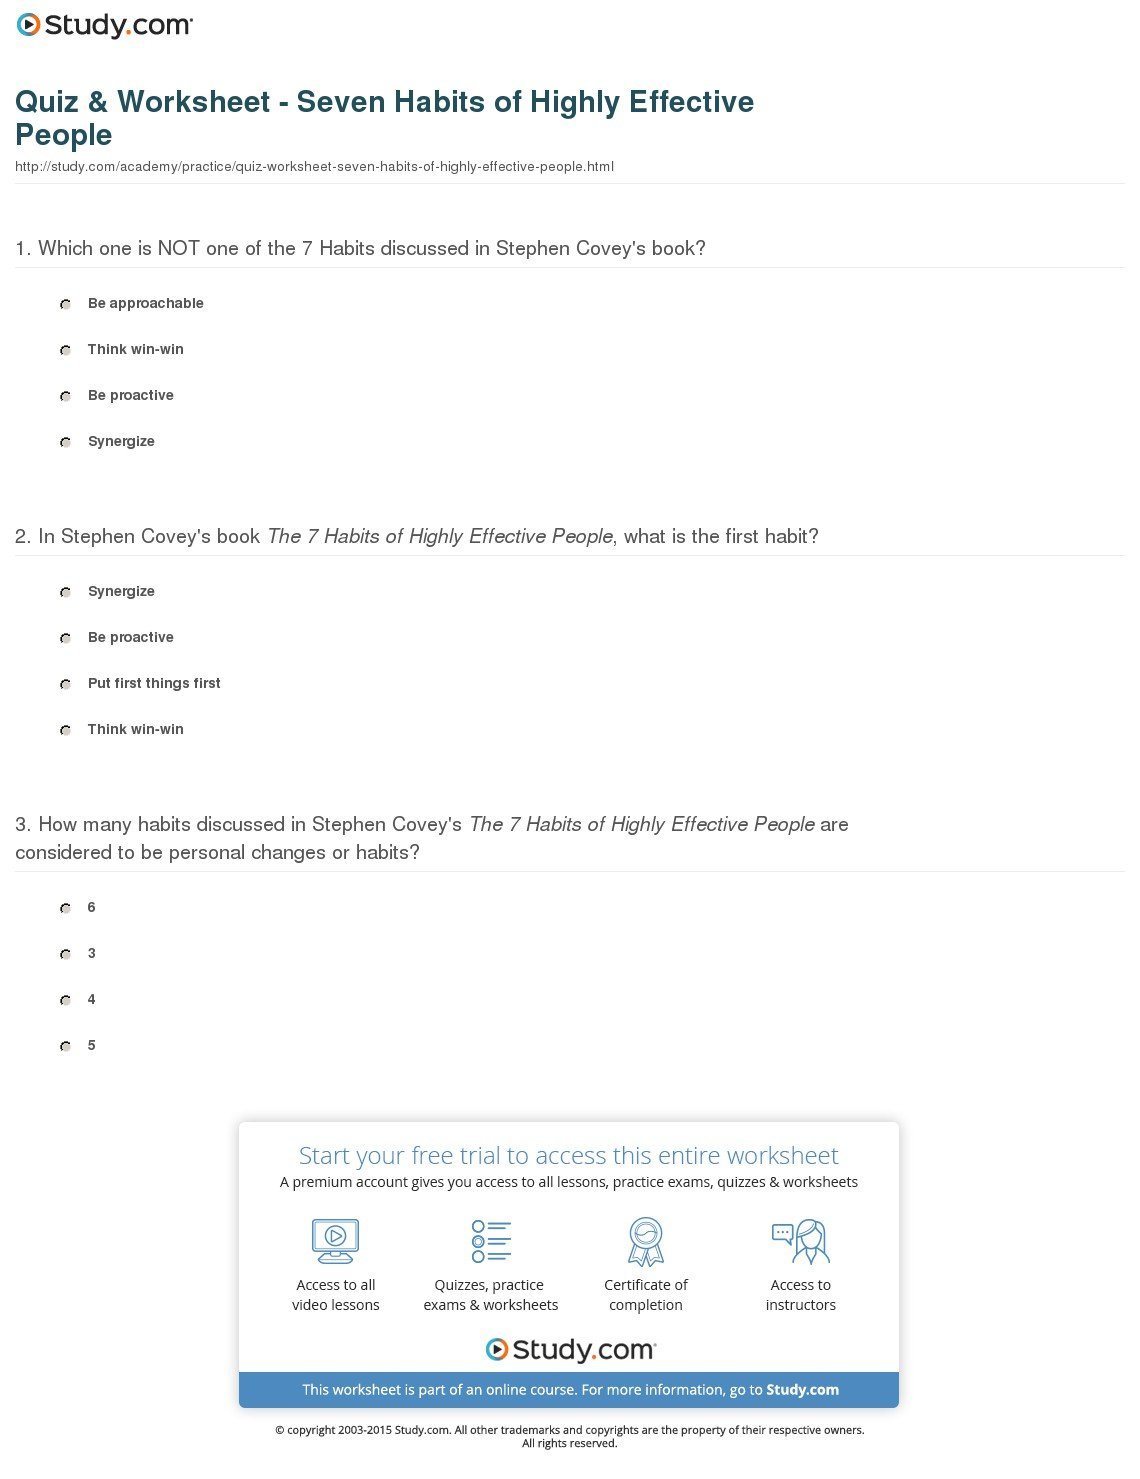 Quiz  Worksheet  Seven Habits Of Highly Effective People  Study Intended For Habit 6 Synergize Worksheet Answers